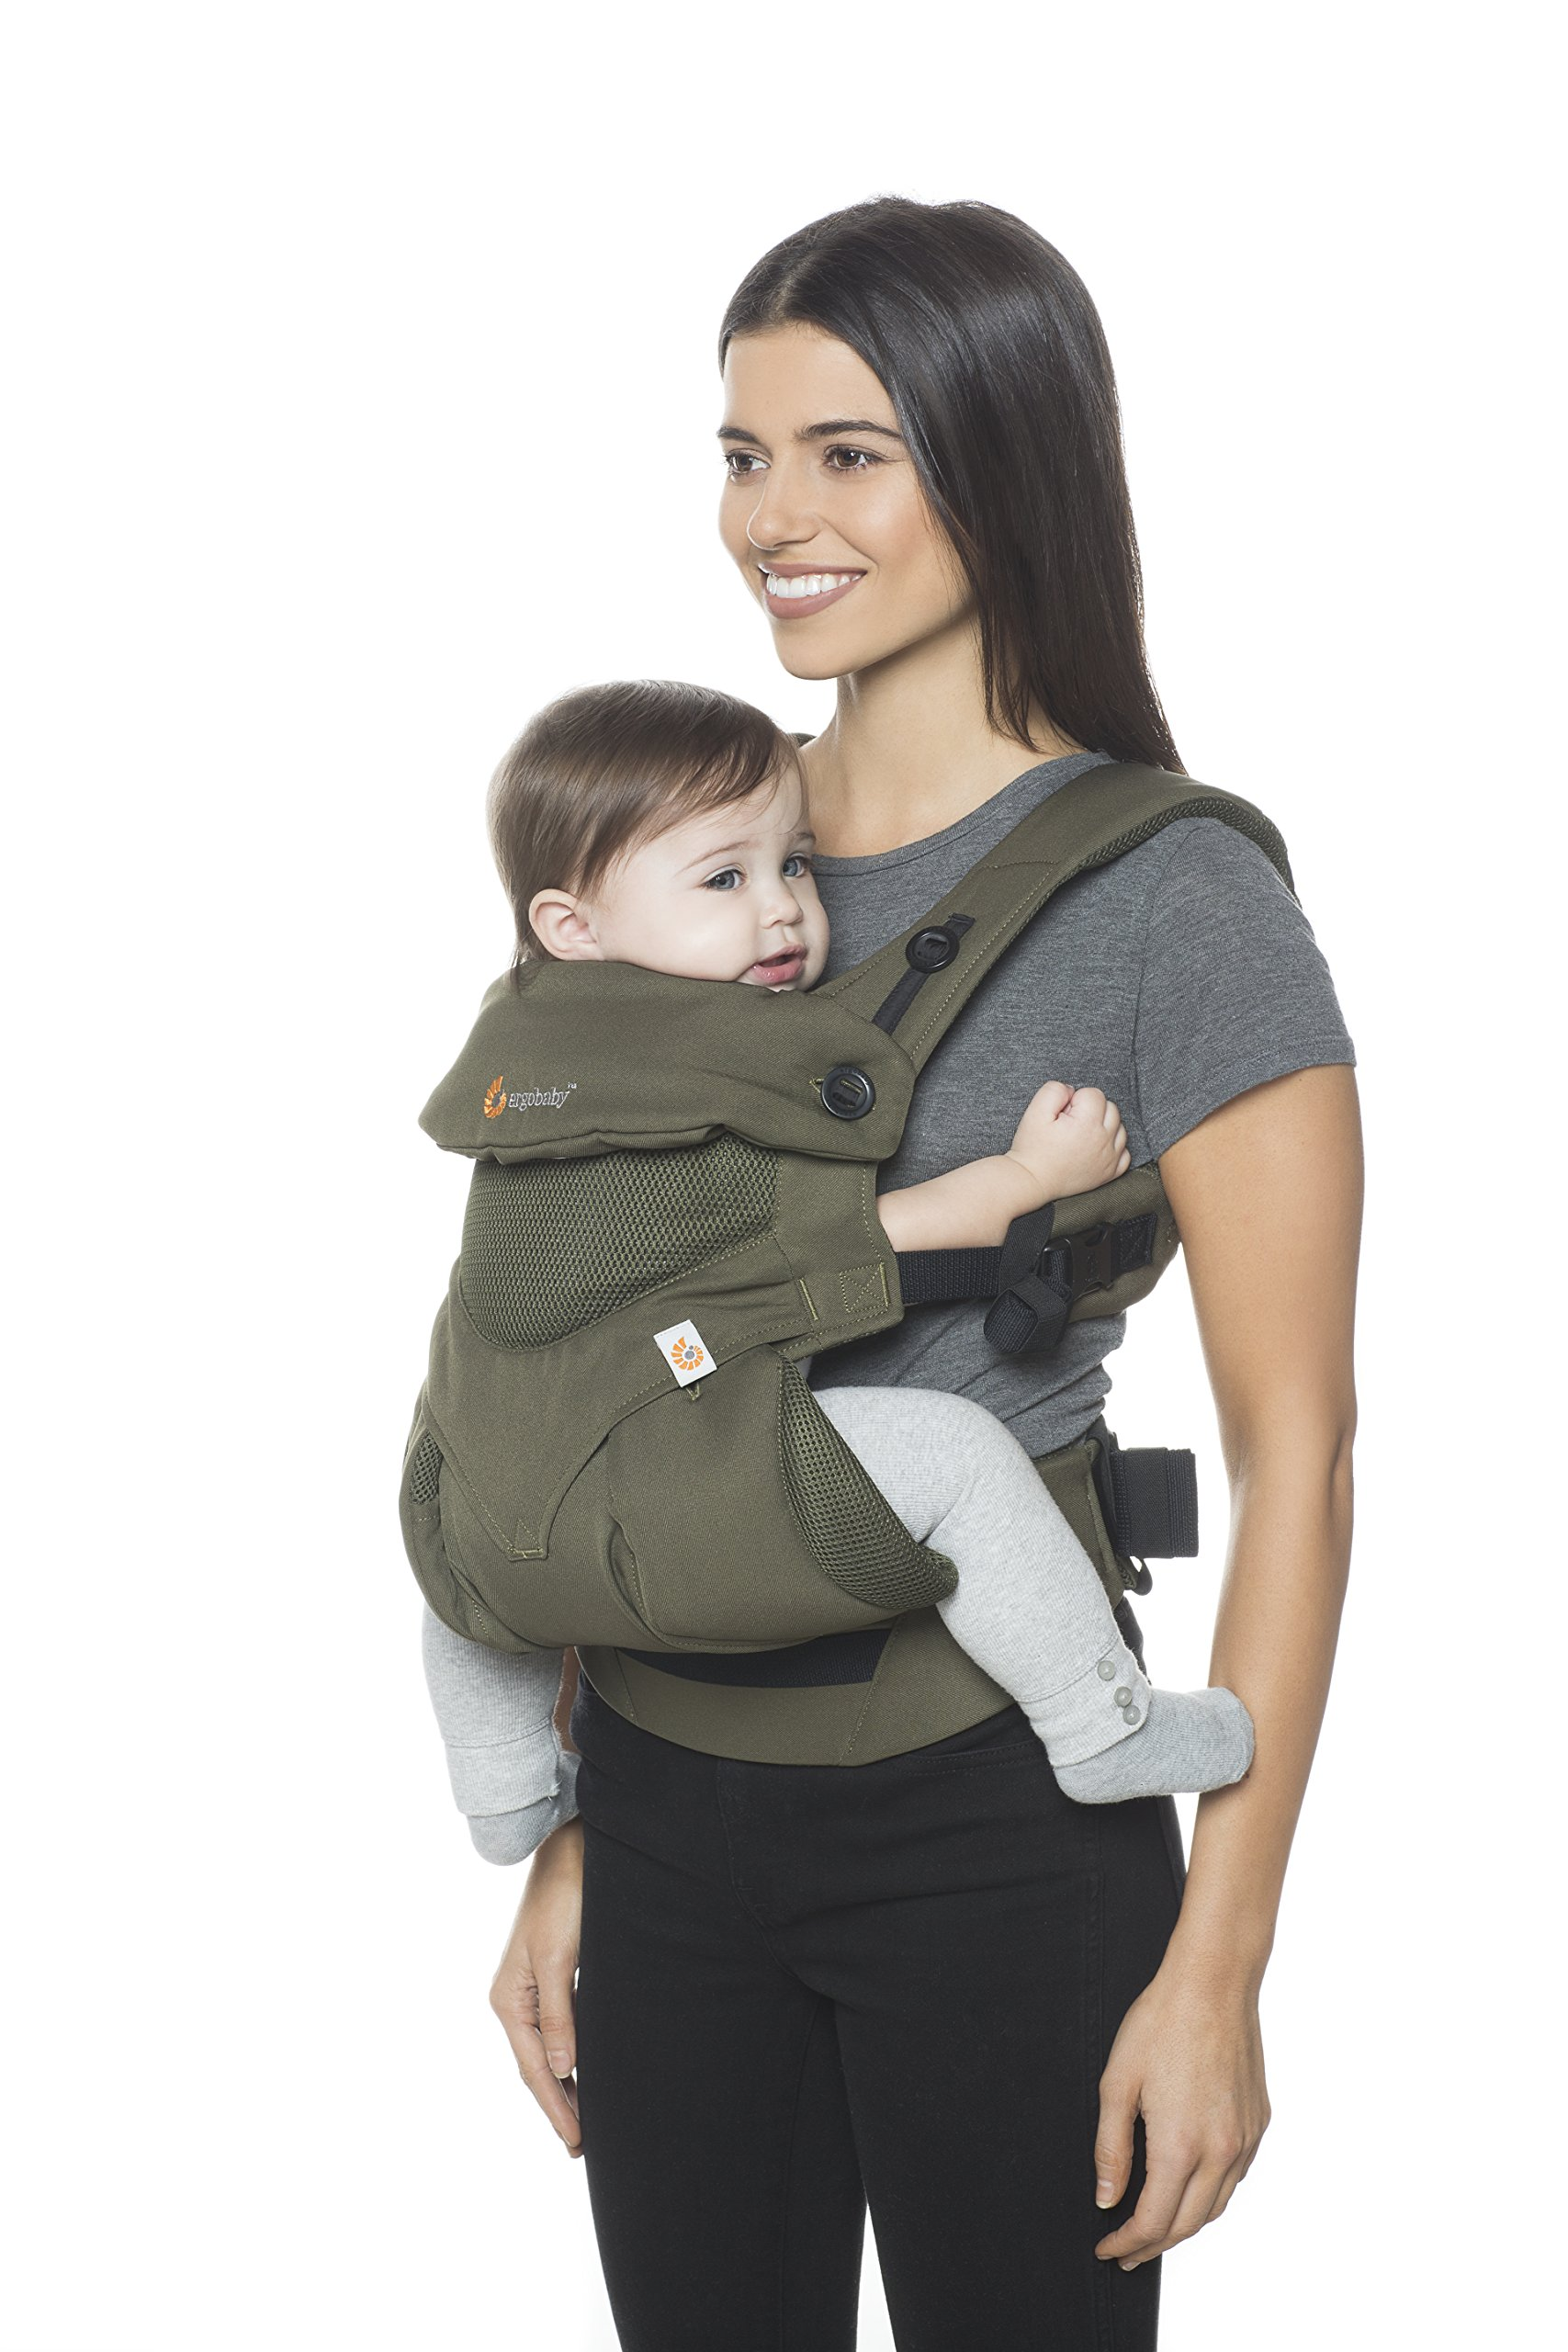 Ergobaby Baby Carrier up to 3 years (12-45 lbs) 360 Cool Air Khaki Green, 4 Ergonomic Carry Positions, Front Back Baby Carrier front facing, Backpack Ergobaby Ergonomic baby carrier for the summer, with 4 ergonomic carry positions: front-inward, back, hip, and front-outward. The carrier is suitable for babies and toddlers weighing 5.5-20 kg (12-45 lbs), and can be used as a back carrier. Also with insert for newborn babies weighing 3.2-5.5 kg (7-12 lbs), sold separately. NEW - The waistbelt with lumbar support can be worn a little higher or lower to support the lower back and provide optimal comfort, and has adjustable padded shoulder straps. The carrier is suitable for men and women. Maximum baby comfort - Breathable 3D air mesh material provides an optimal temperature for your baby on warm days. The structured bucket seat supports the correct frog-leg position for the baby. The carrier also has a neck support and privacy hood with 50+ UV sun protection. 6